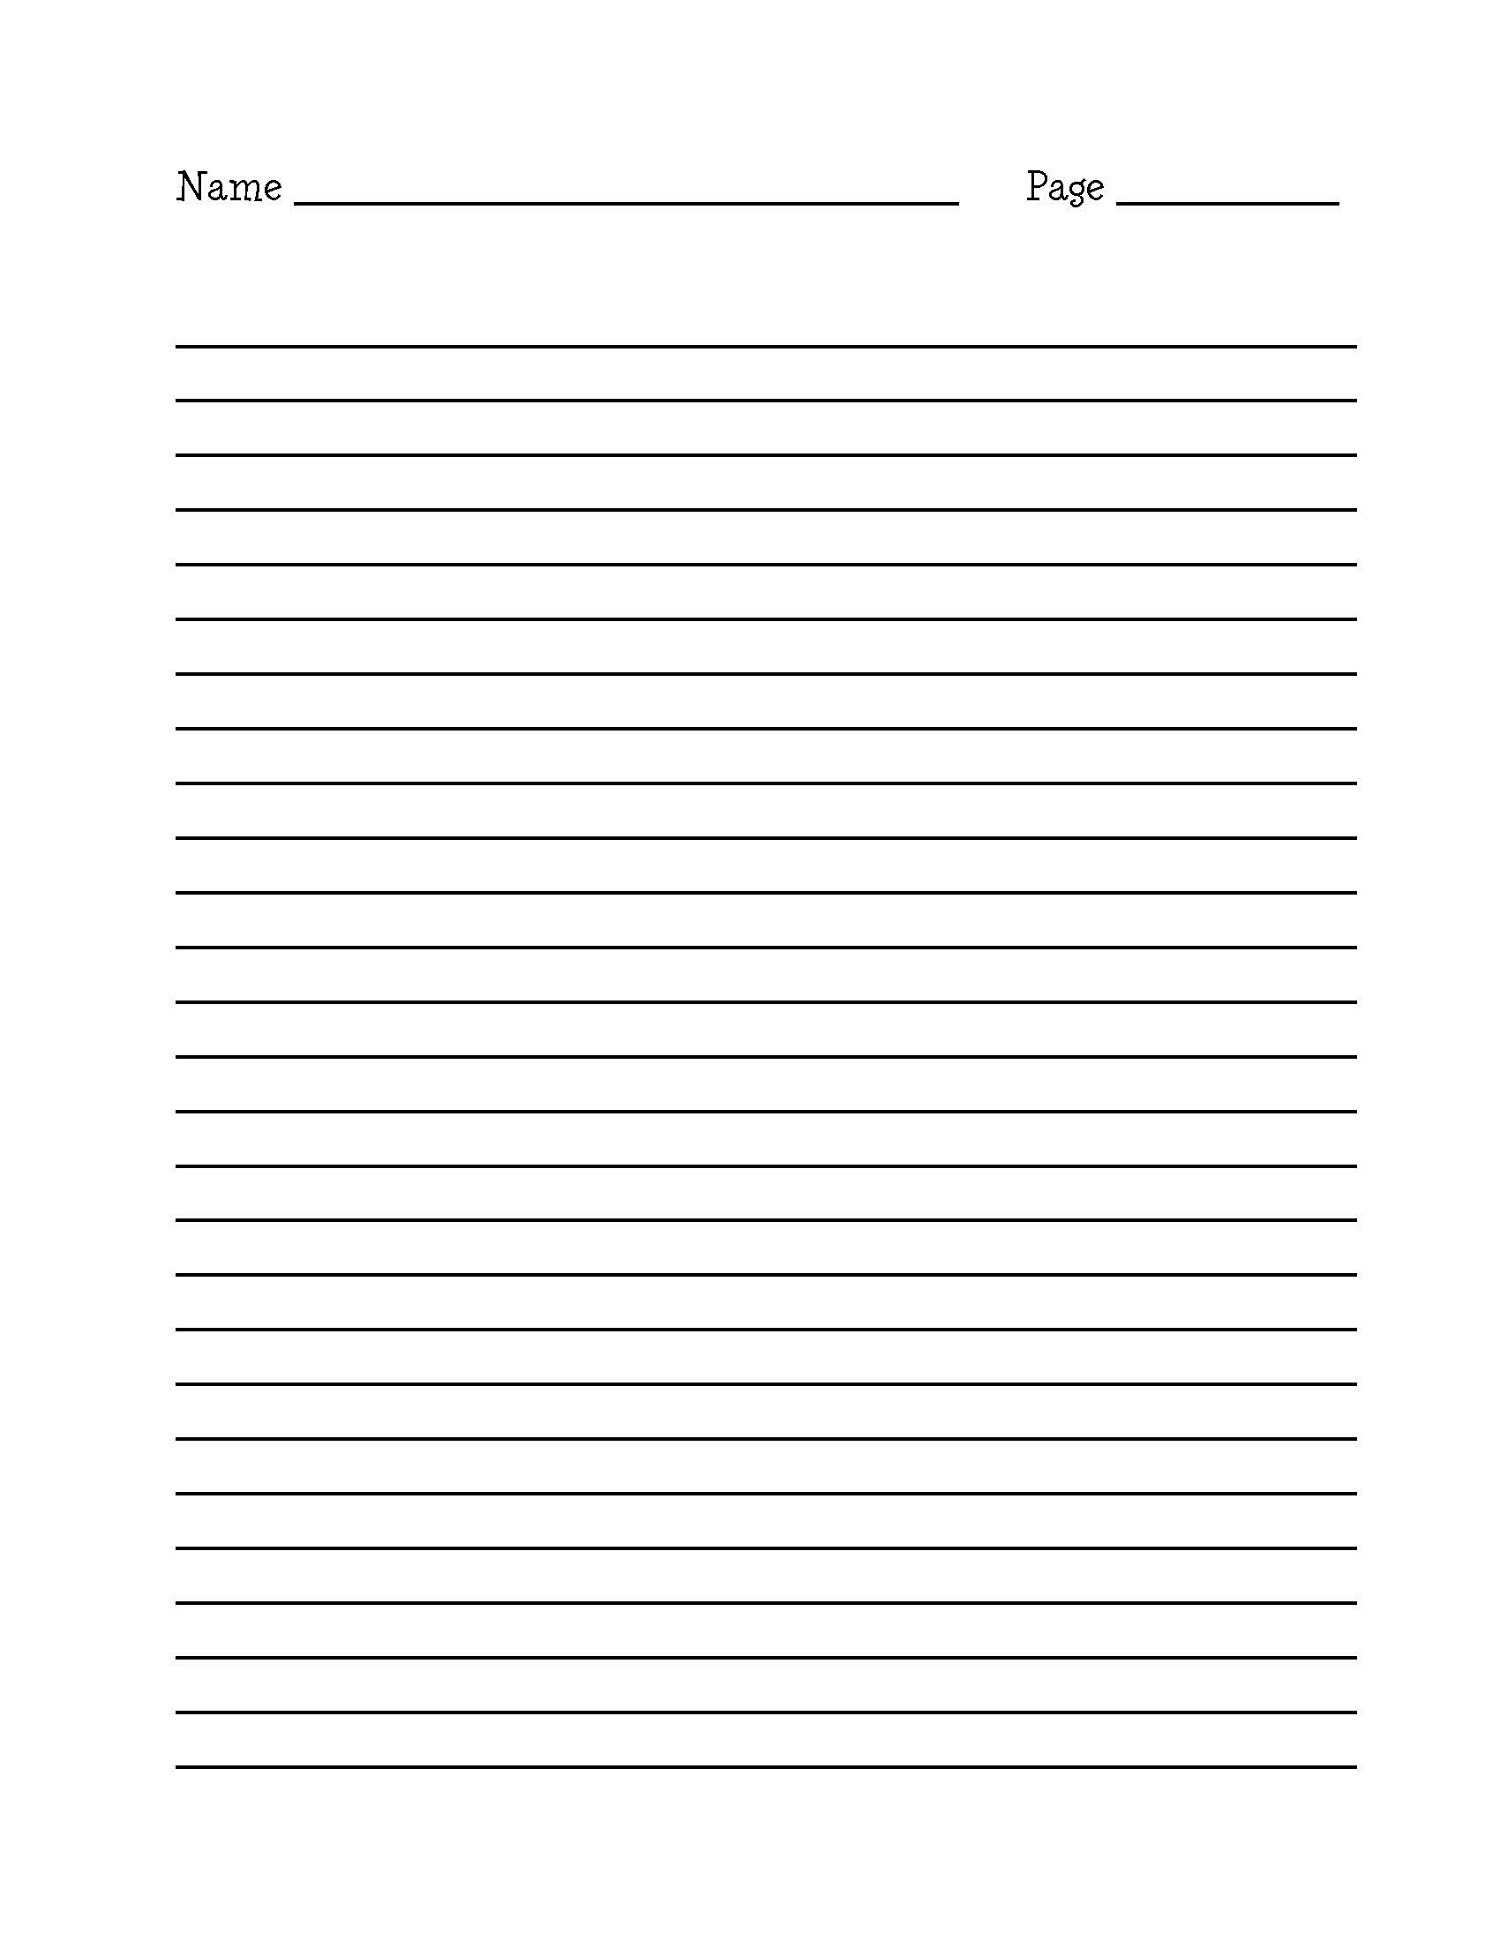 Free Writing Paper Doc Printable Writing Paper Border Writing - Free Printable Writing Paper